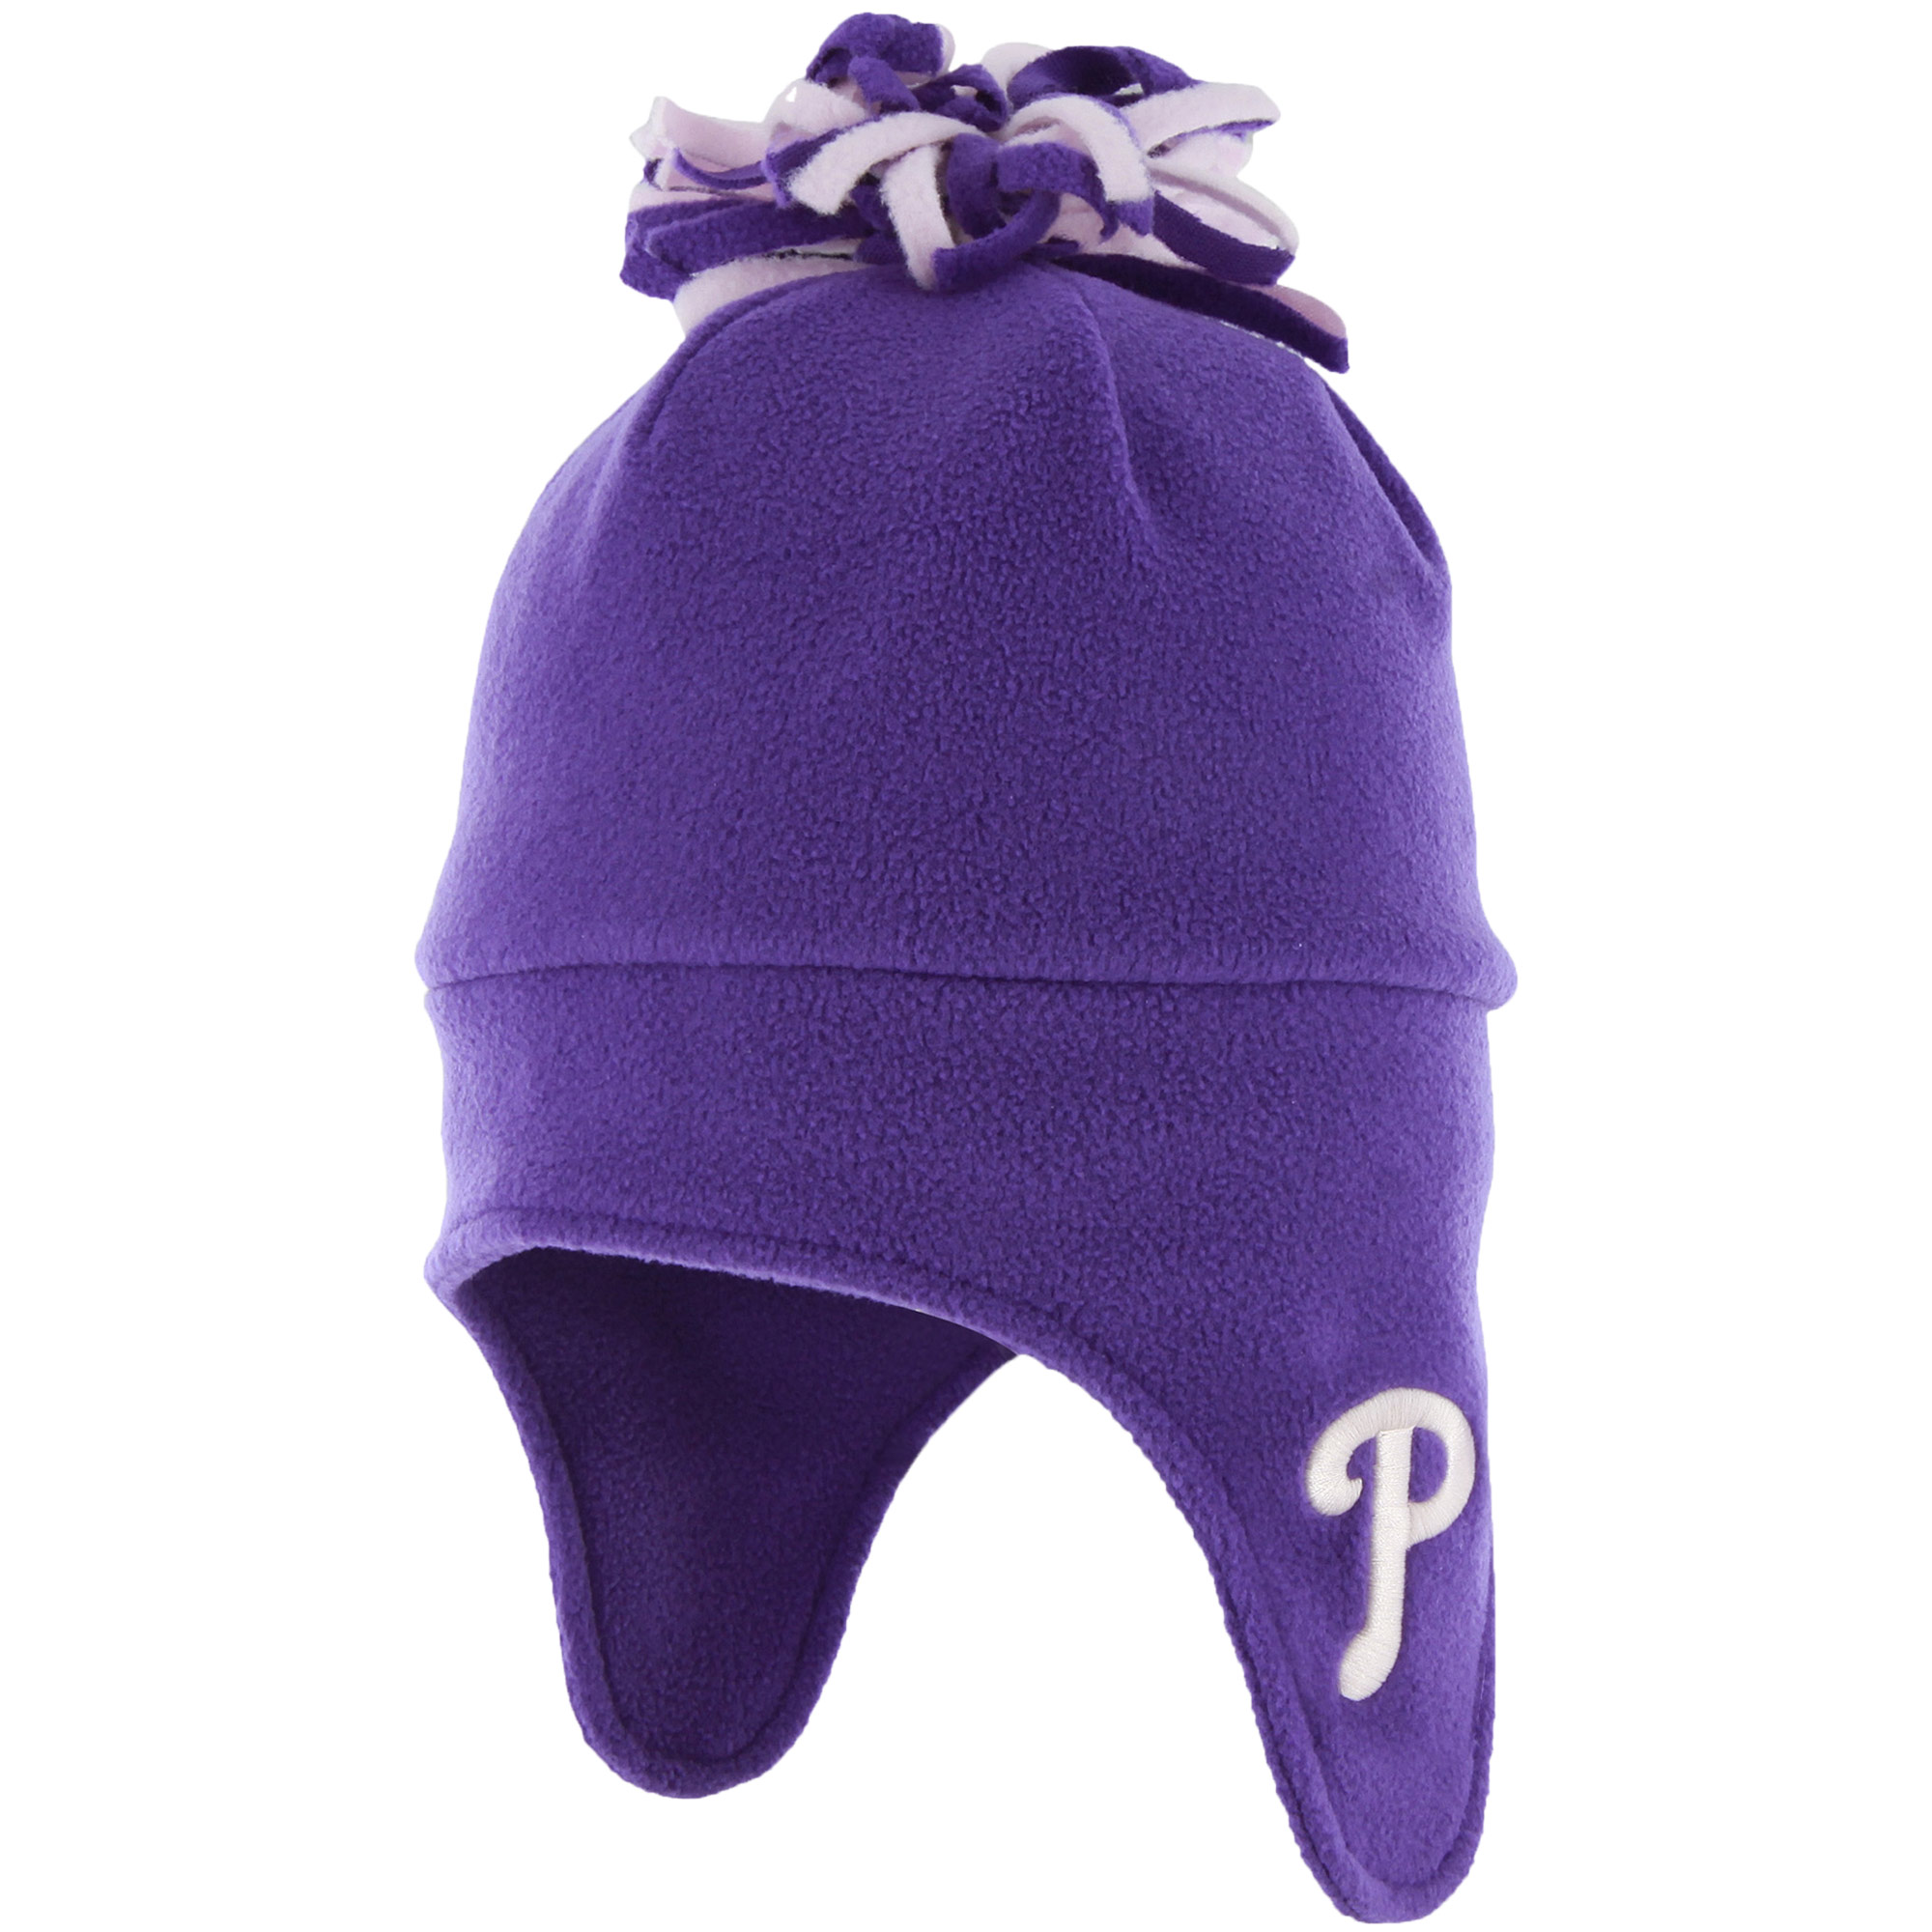 Philadelphia Phillies '47 Youth Girls Co-Captain Cuffed Knit Hat - Purple - OSFA